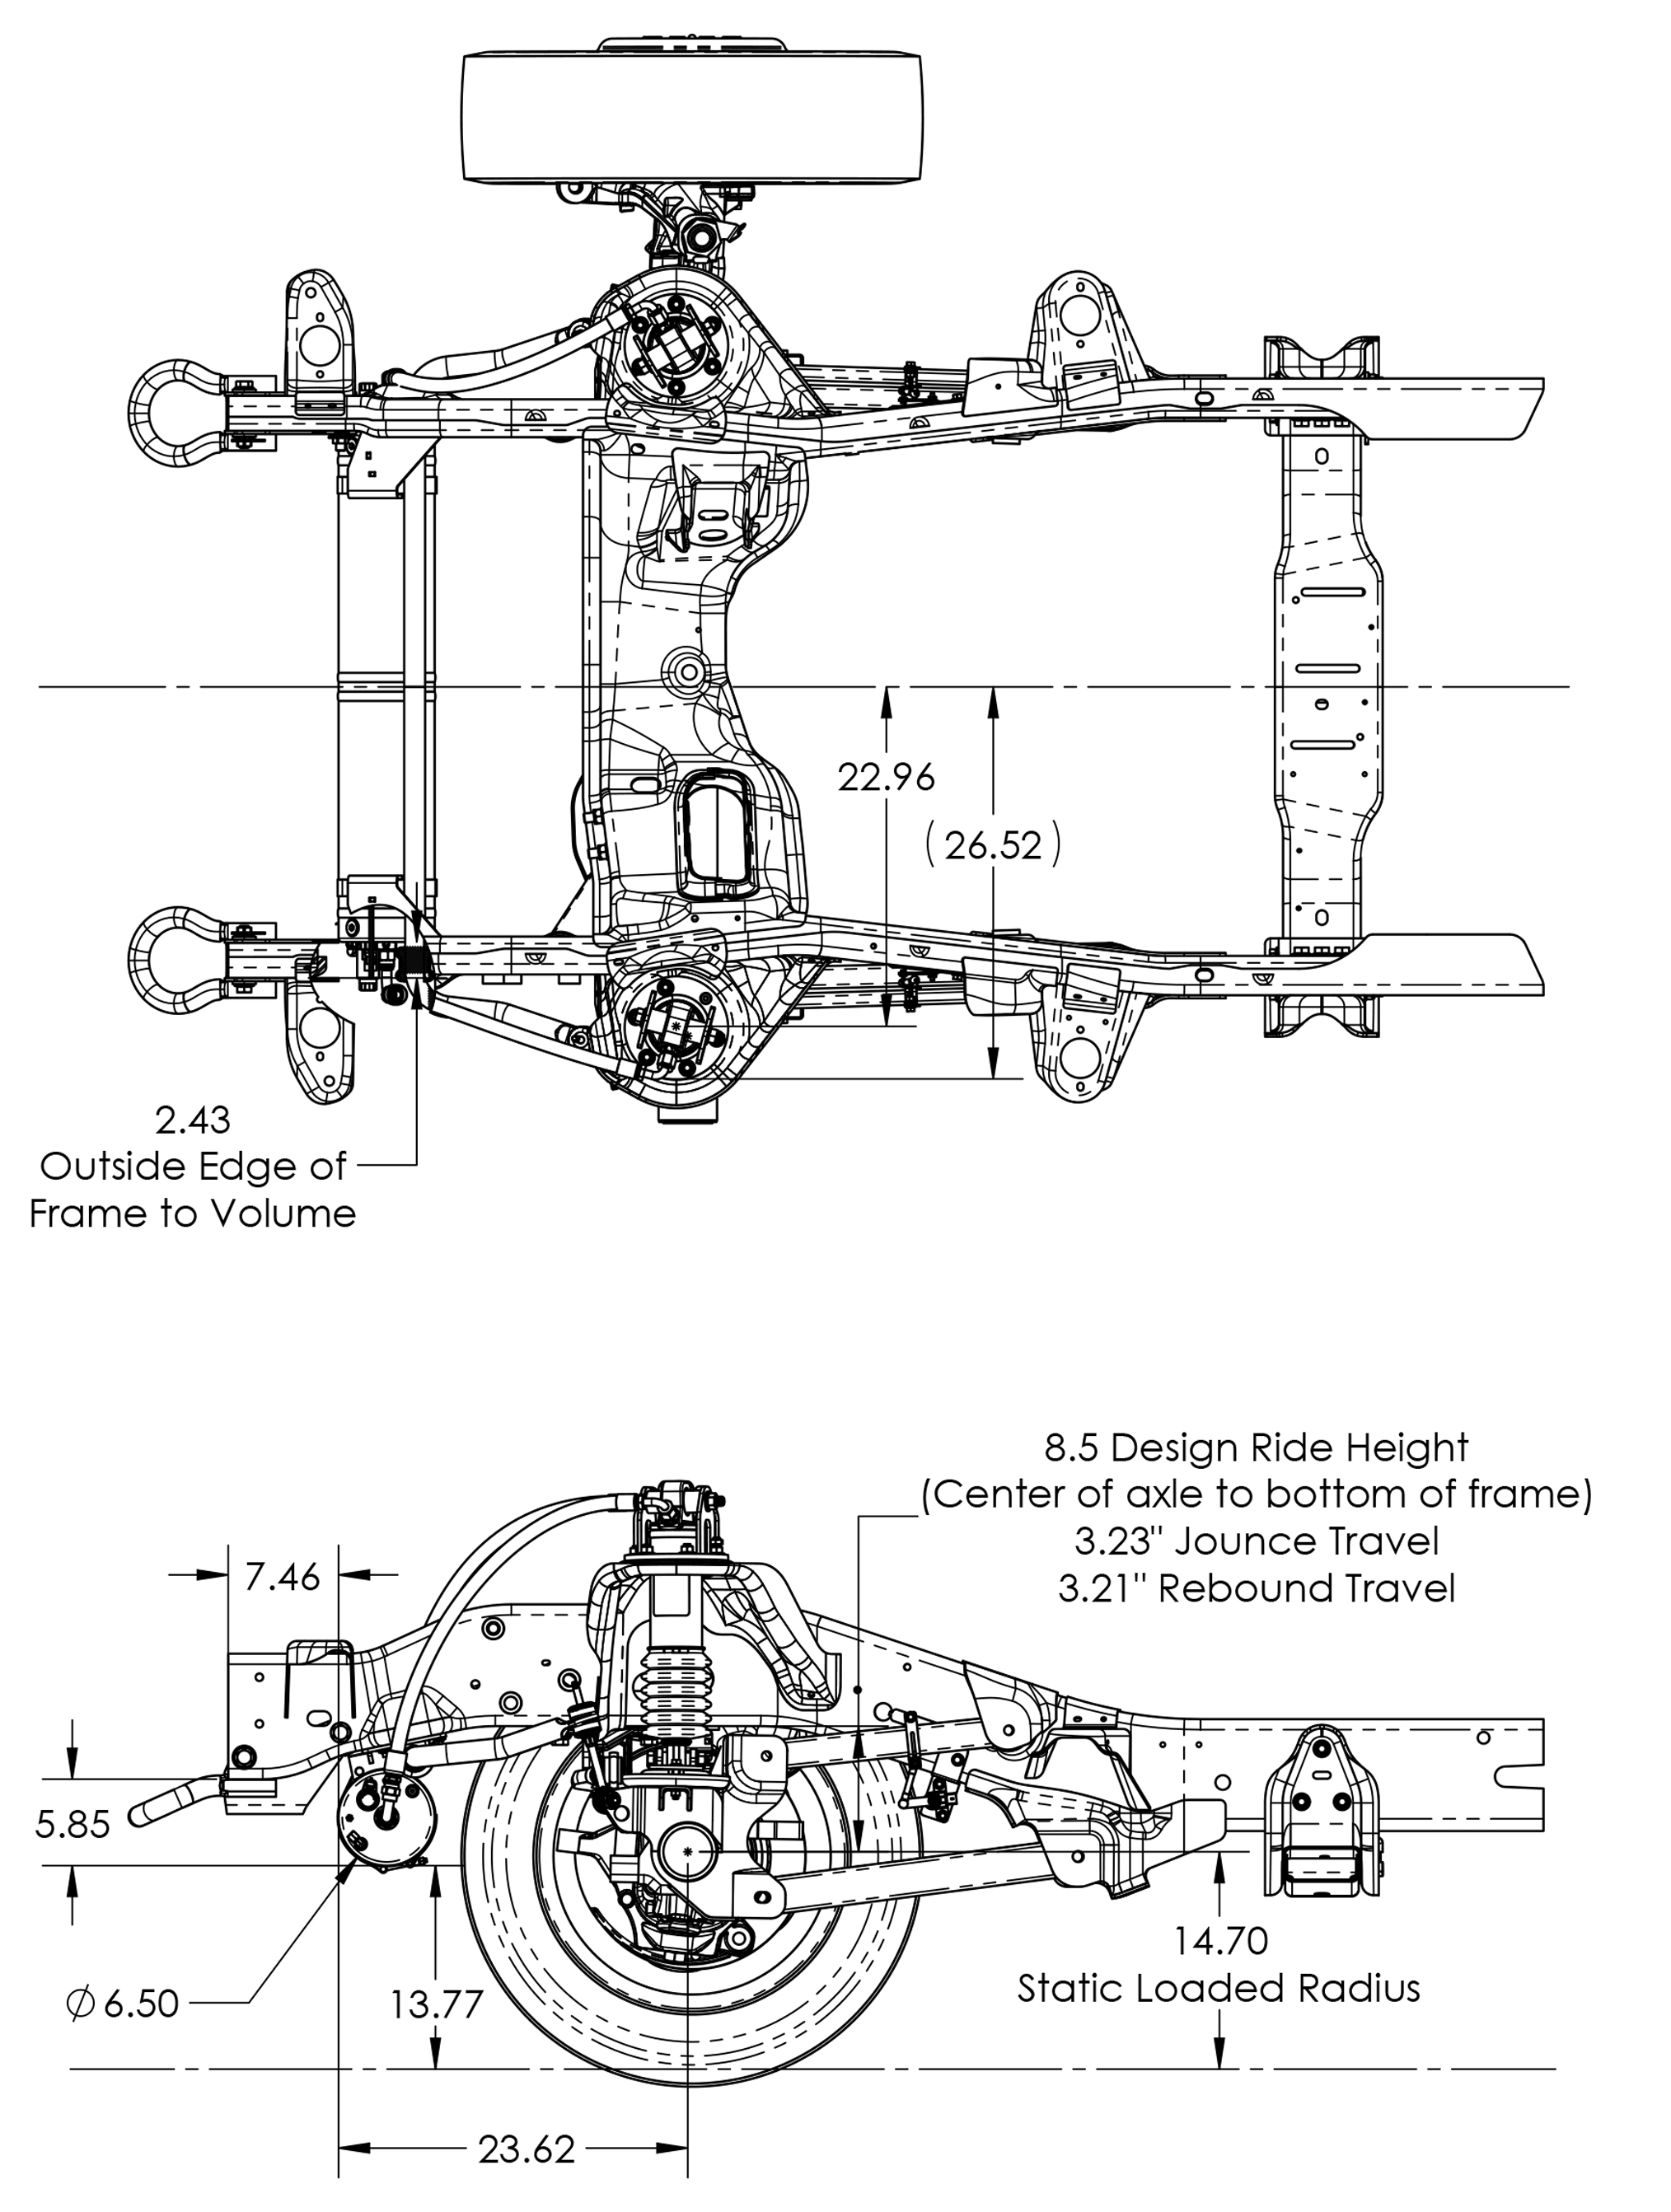 How Would You Improve This Suspension System Manual Guide